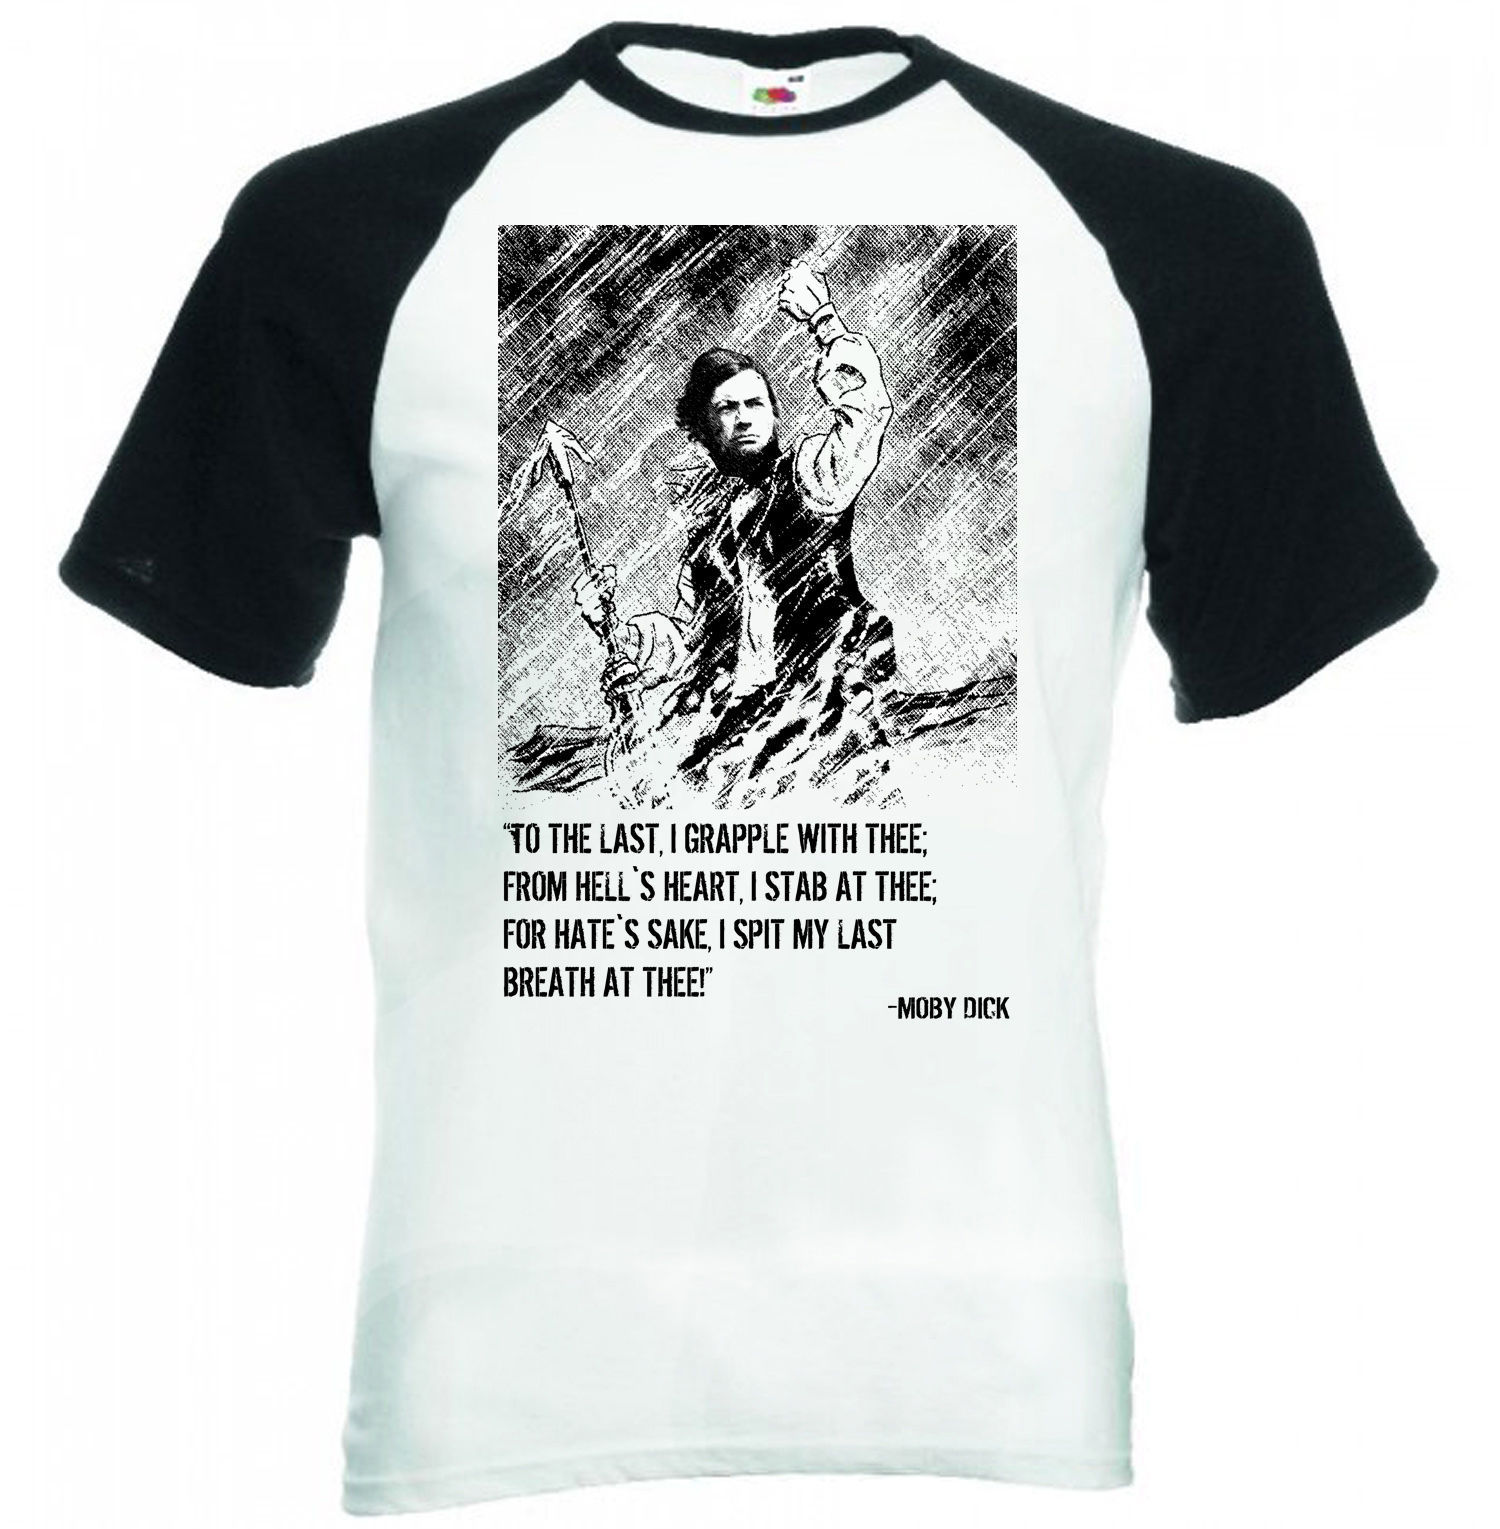 MELVILLE MOBY DICK  - BLACK SLEEVED BASEBALL TSHIRT S-M-L-XL-XXL - $38.39